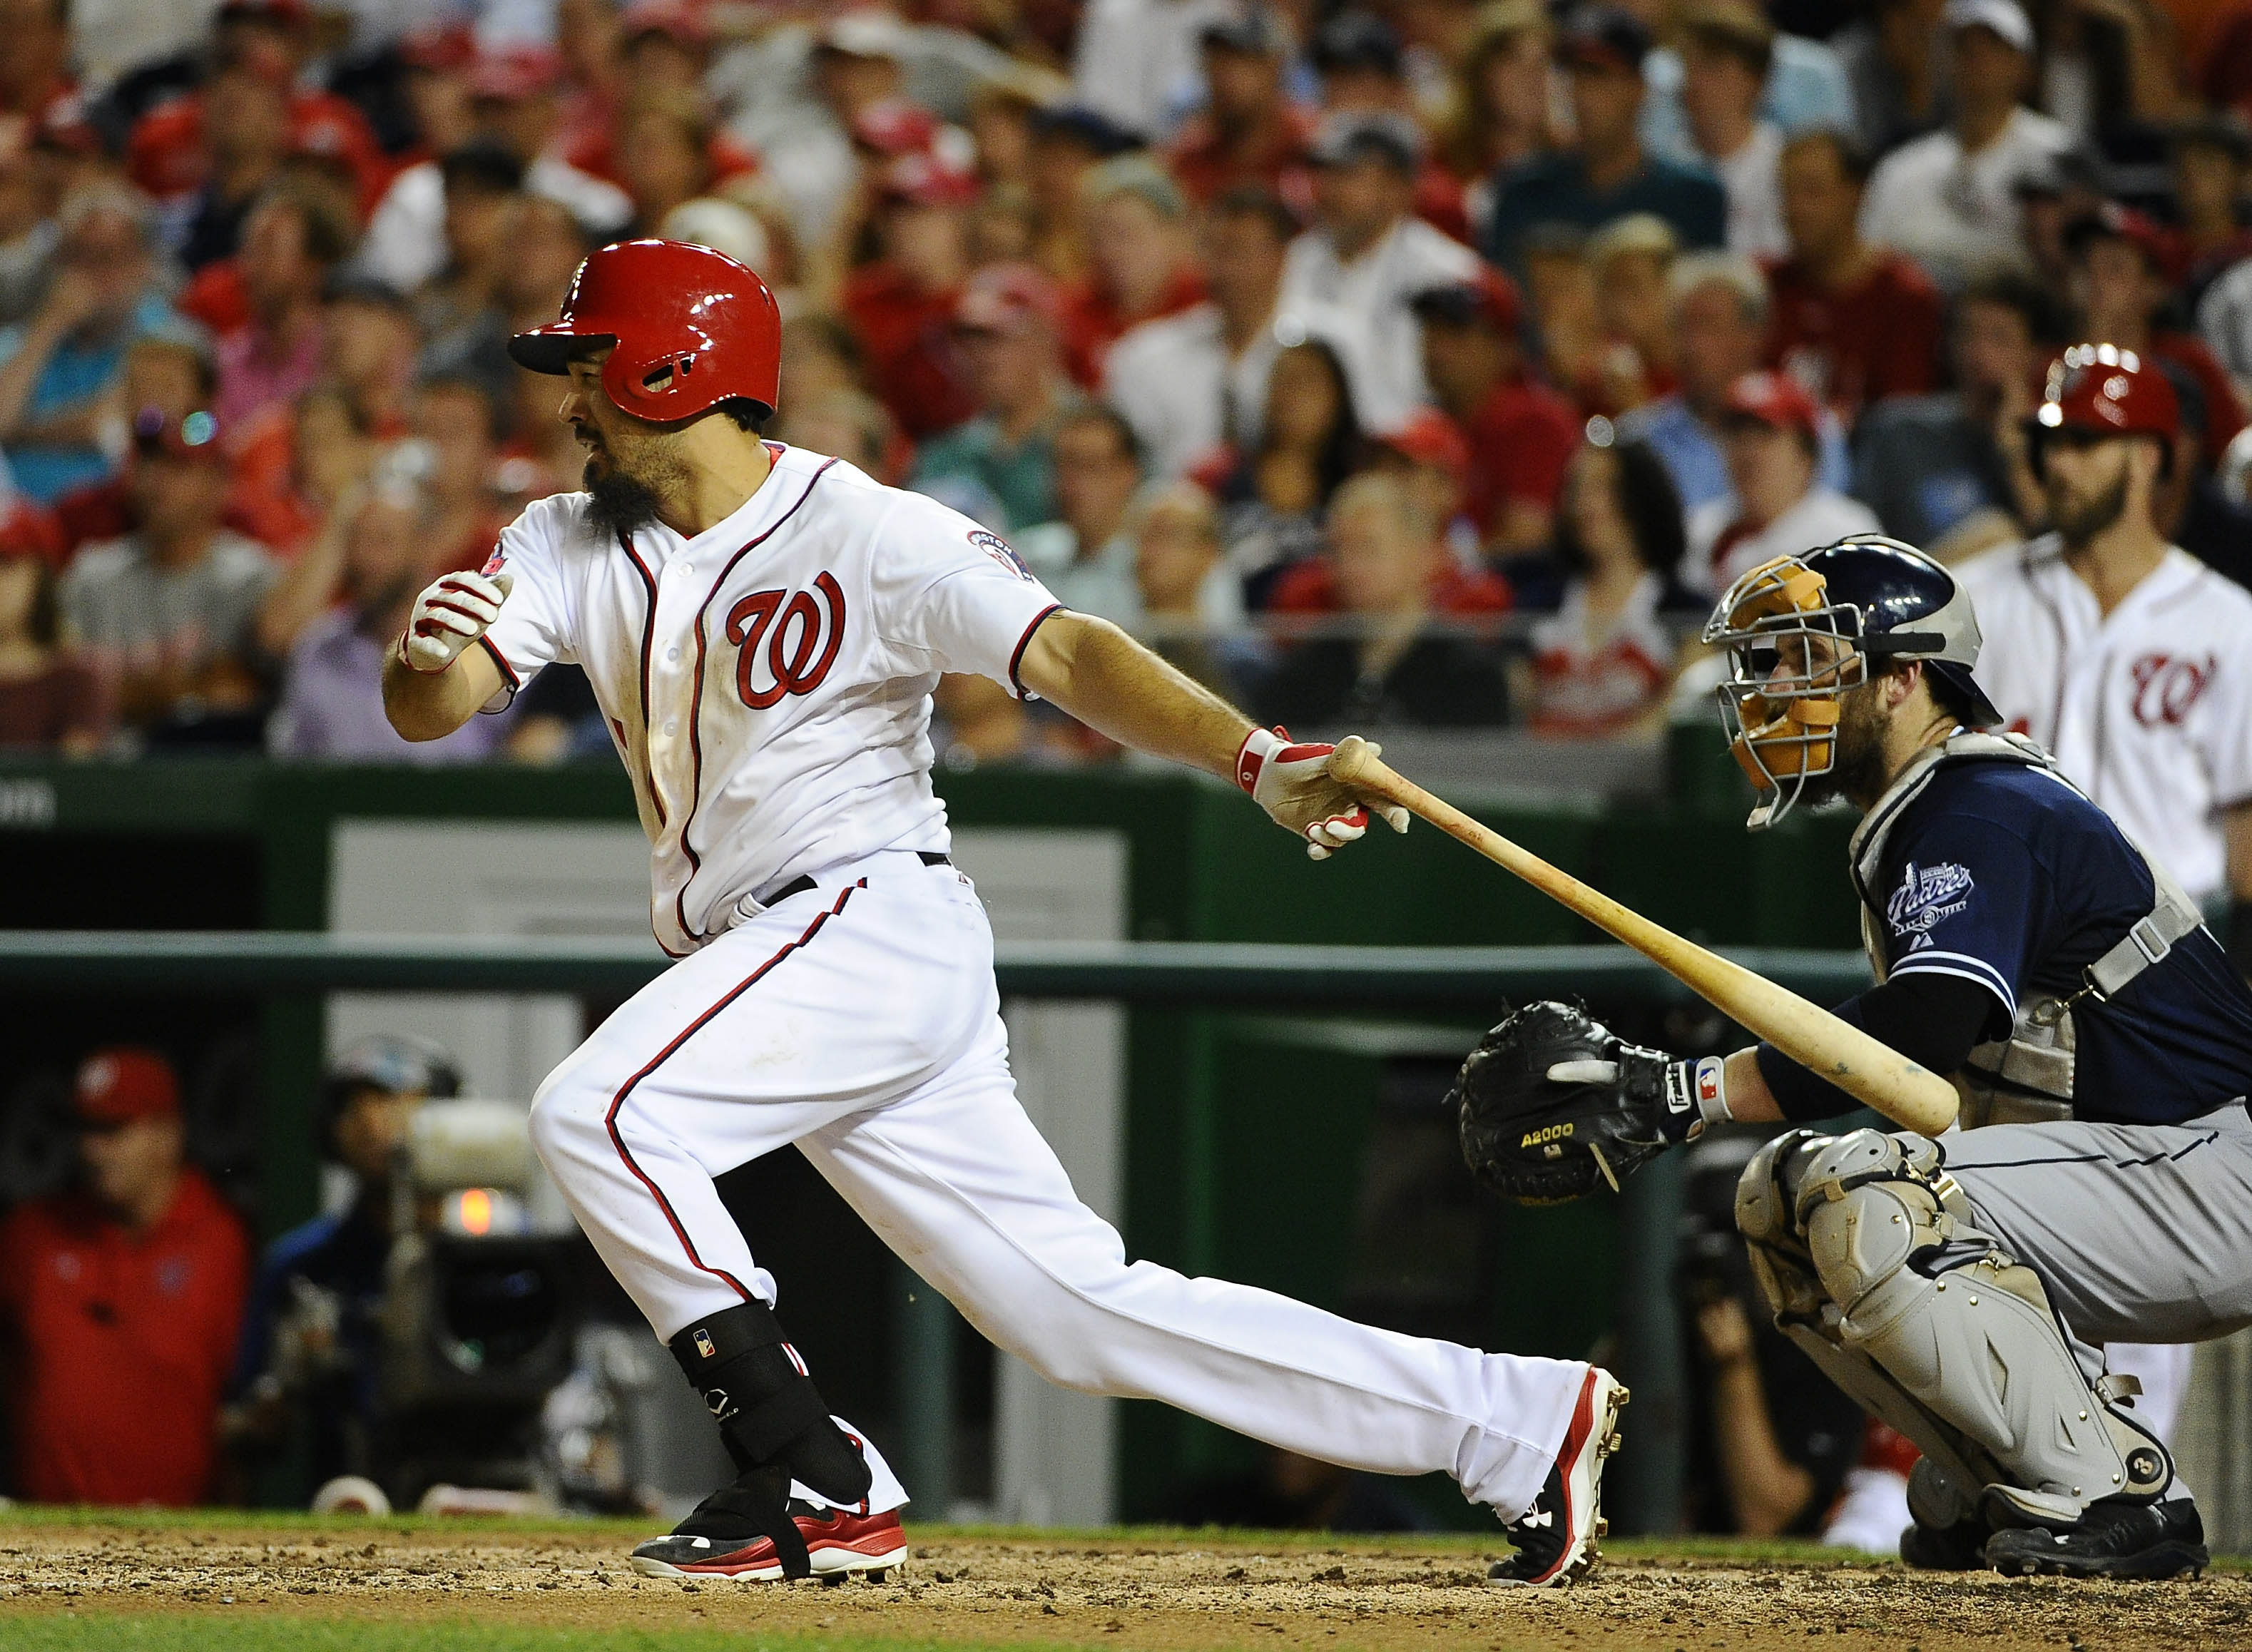 Nats Stock Watch: Rendon rediscovering his power stroke